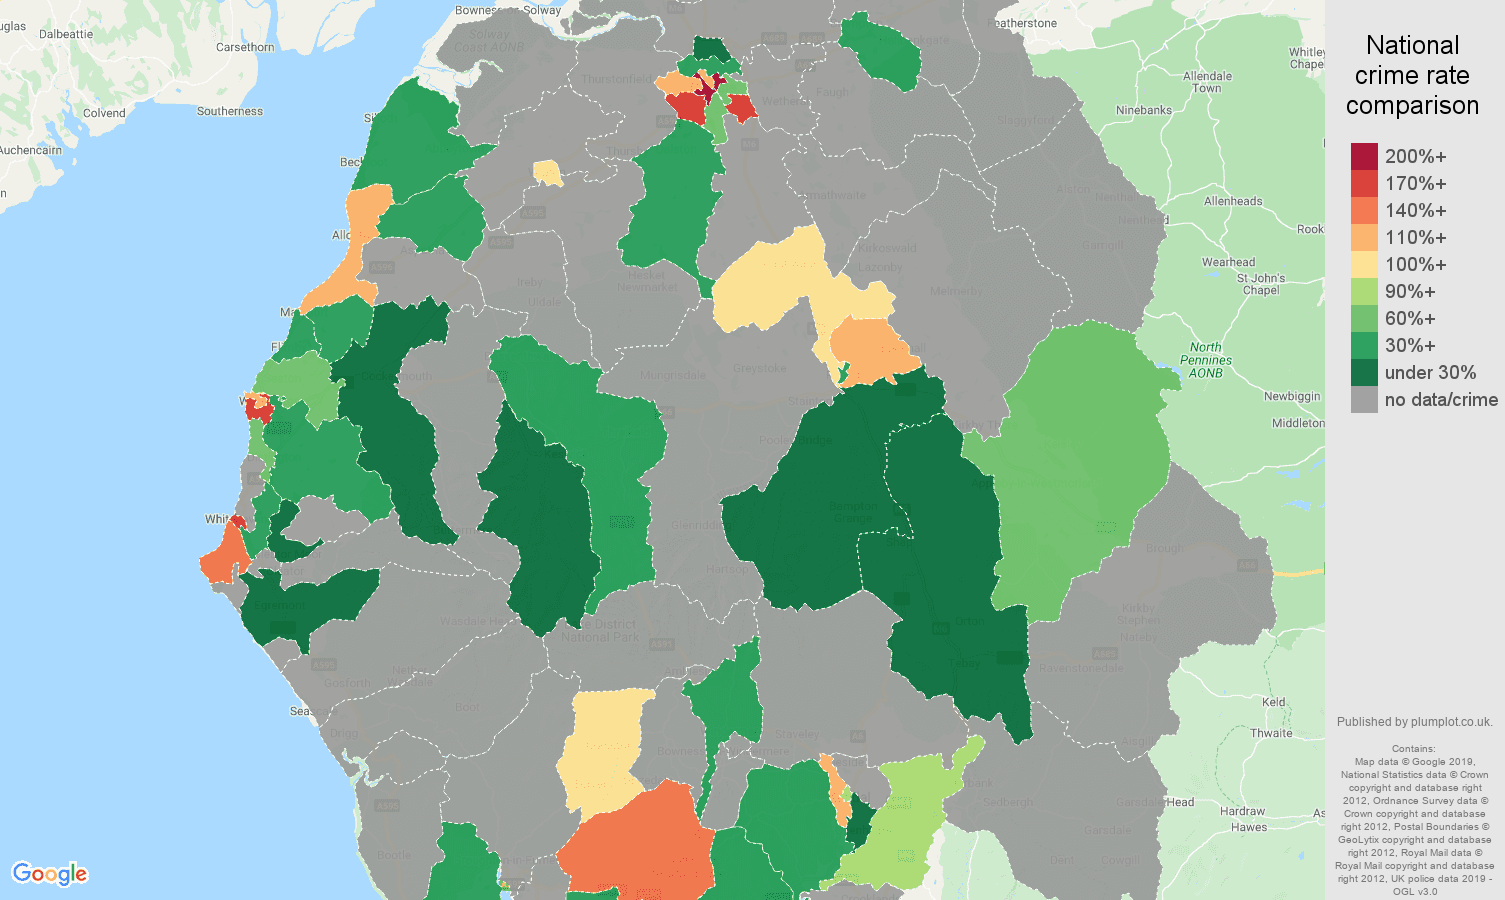 Cumbria possession of weapons crime rate comparison map